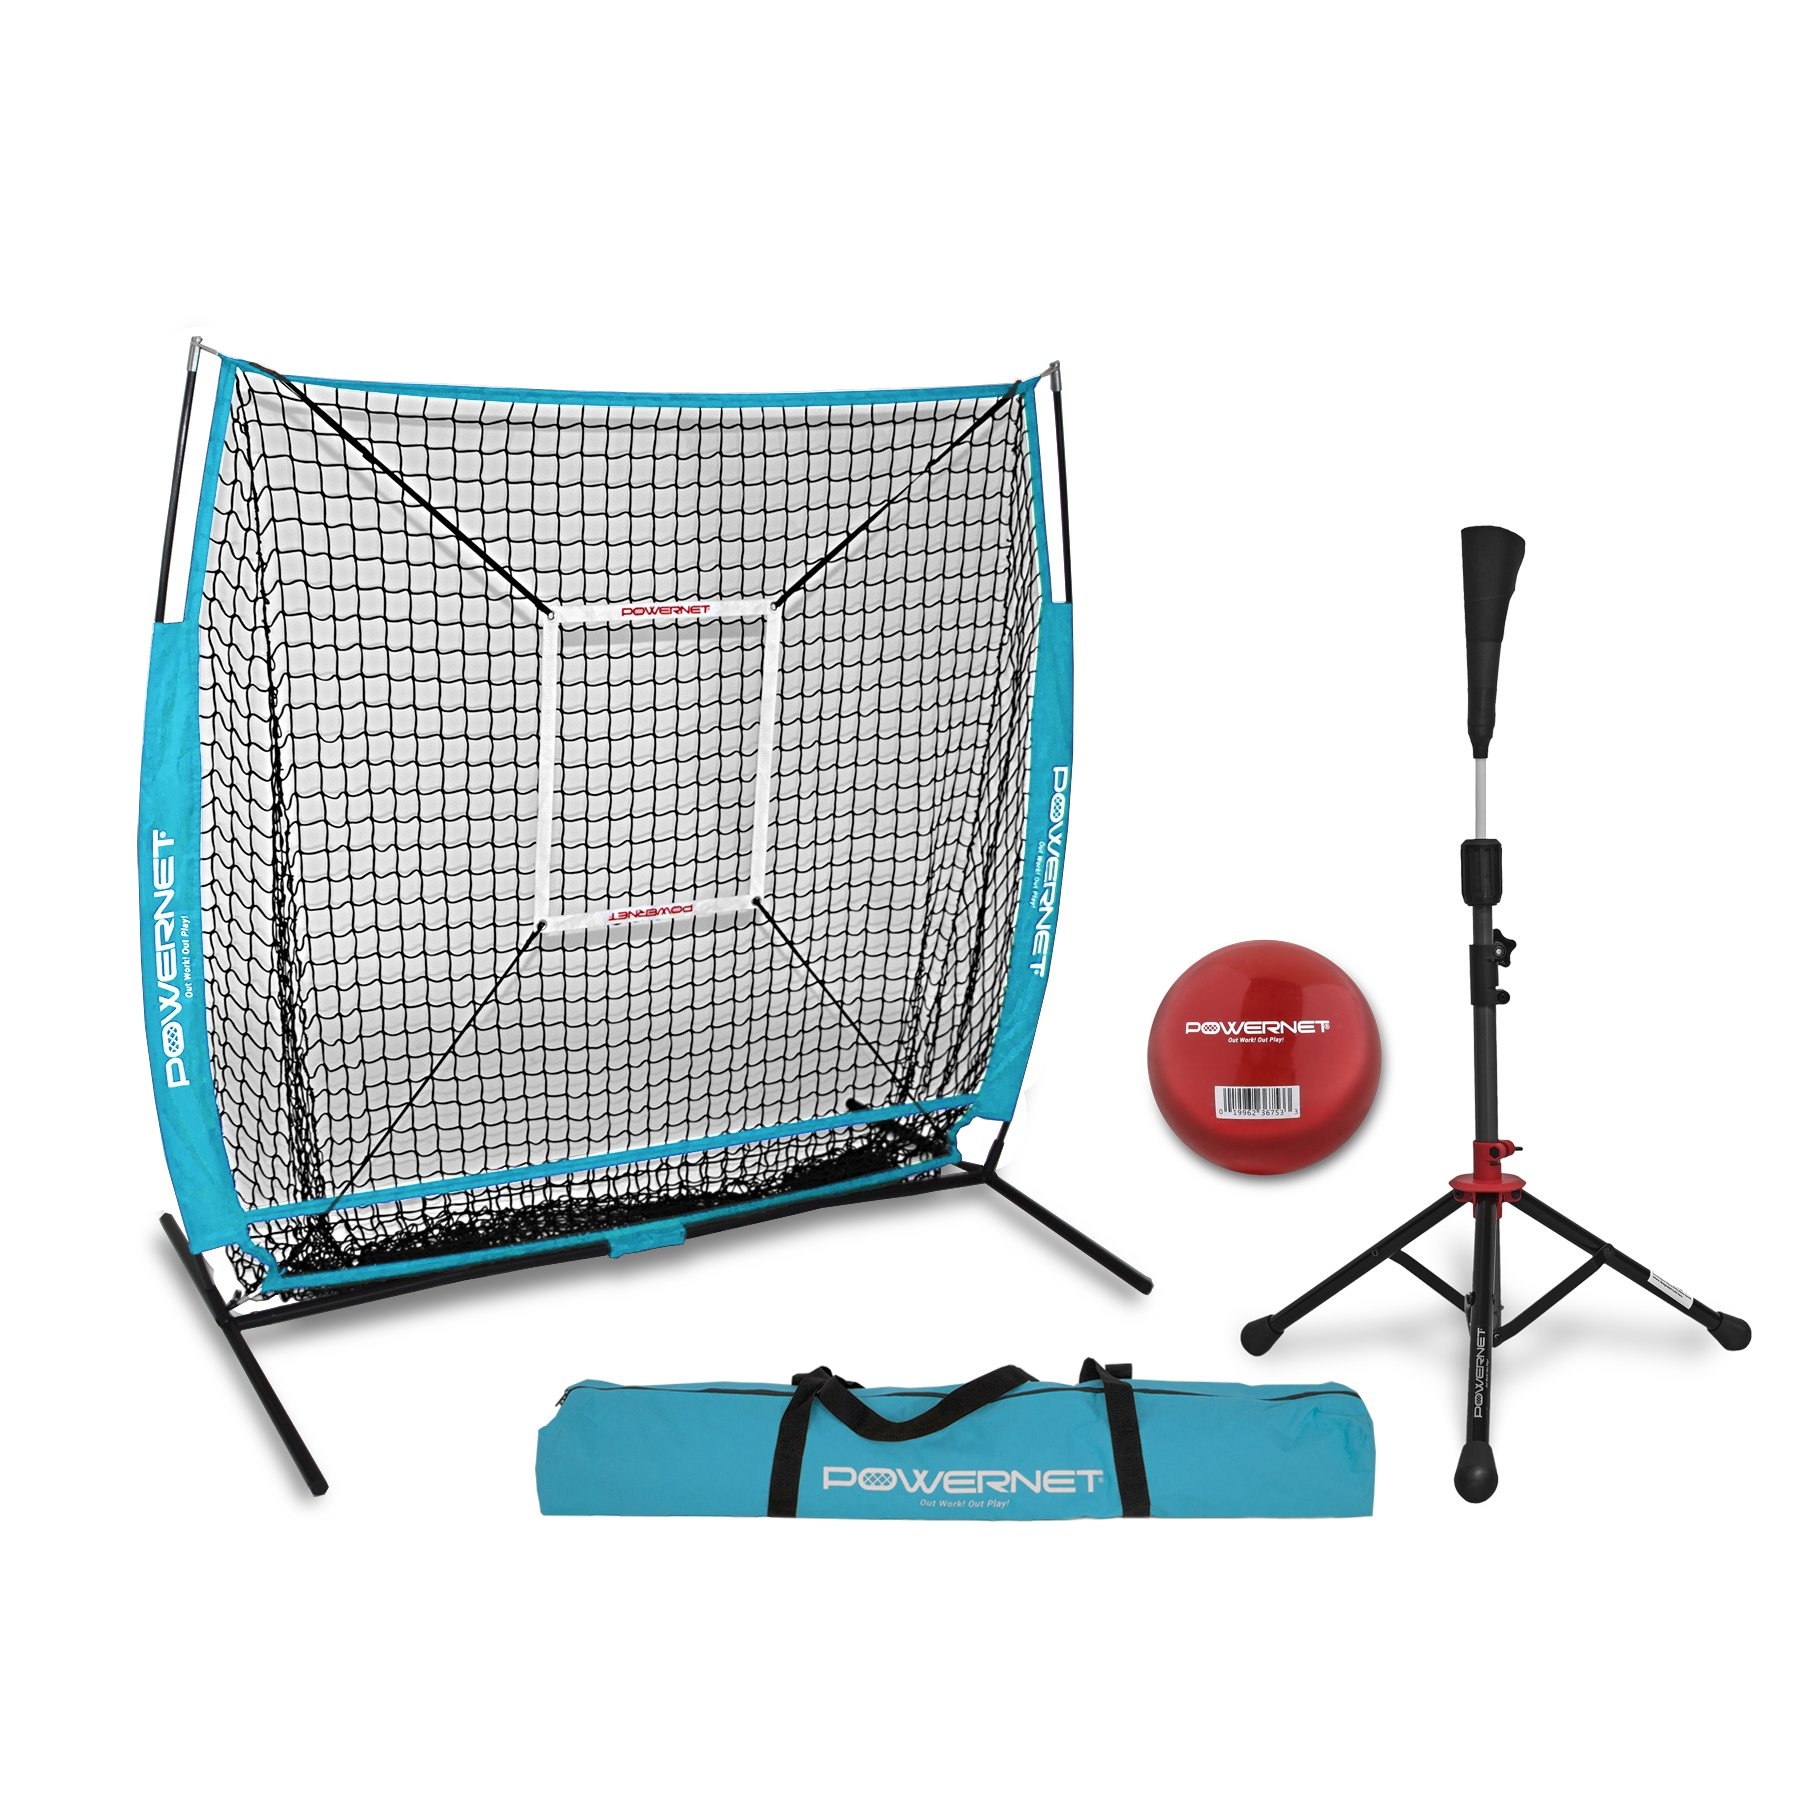 PowerNet 5x5 Practice Net + Deluxe Tee + Strike Zone + Weighted Training Ball Bundle (Sky Blue) | Baseball Softball Pitching Batting Coaching Pack | Work on Pitch Accuracy | Build Plate Confidence